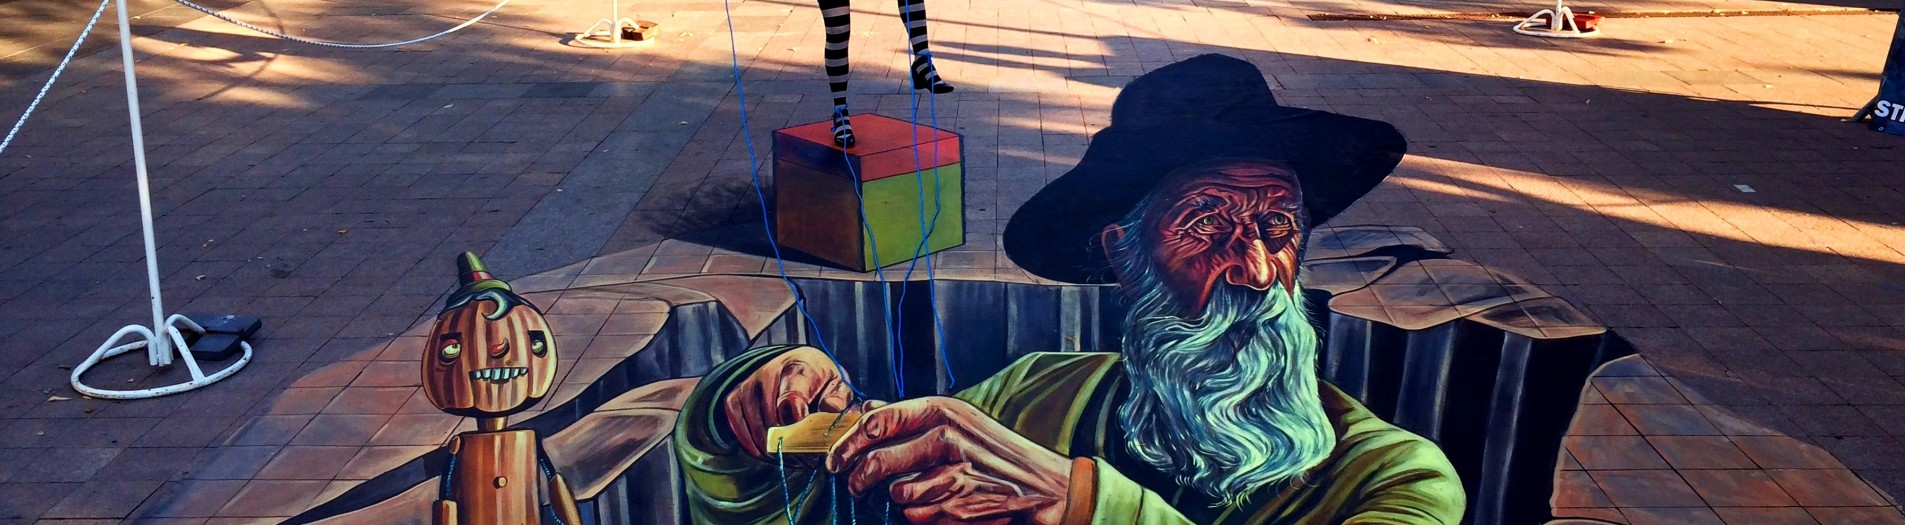 The anamorphic Puppeteer in Ruse, Bulgaria!